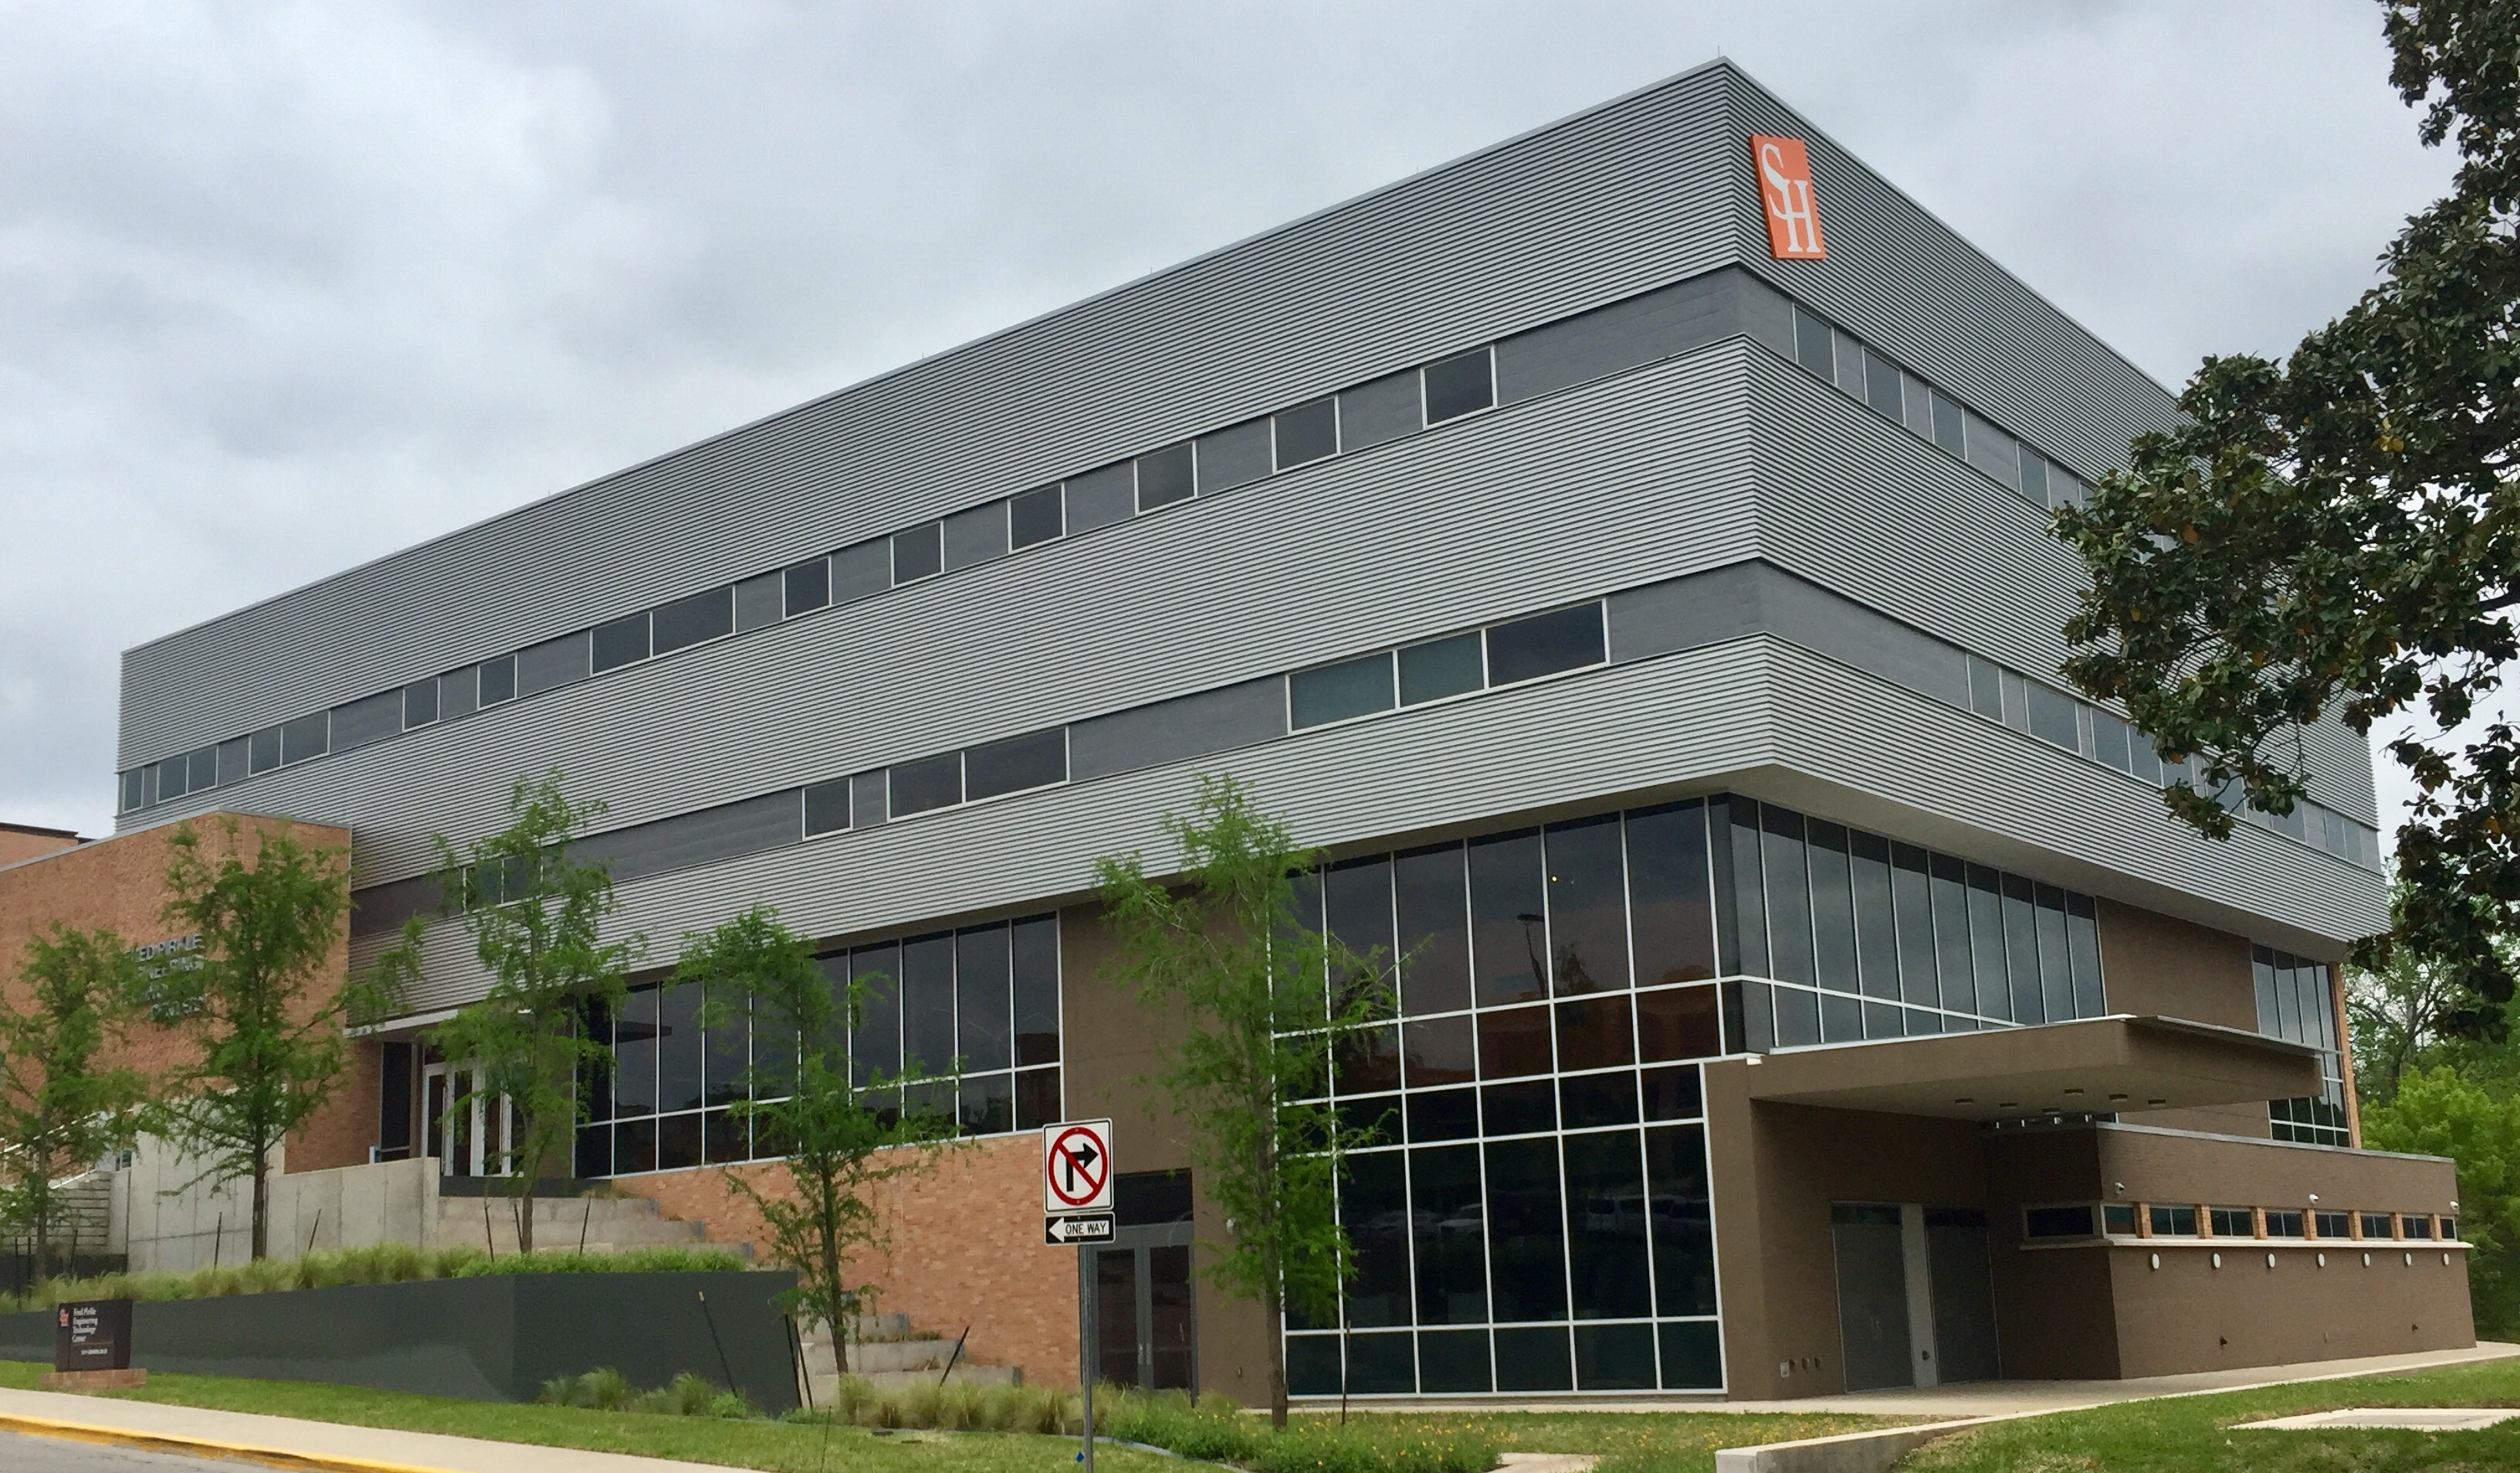 Fred Pirkle Engineering Technology Center